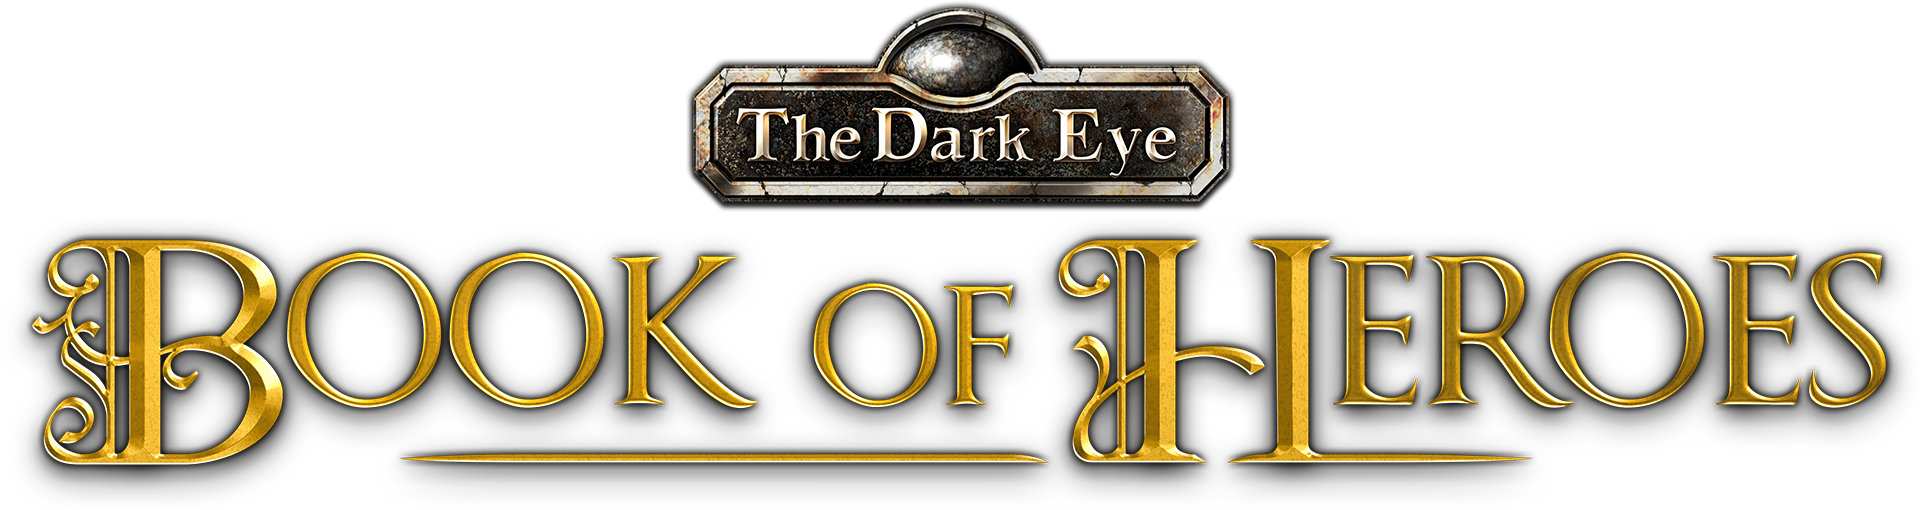 The Dark Eye: Book of Heroes logo